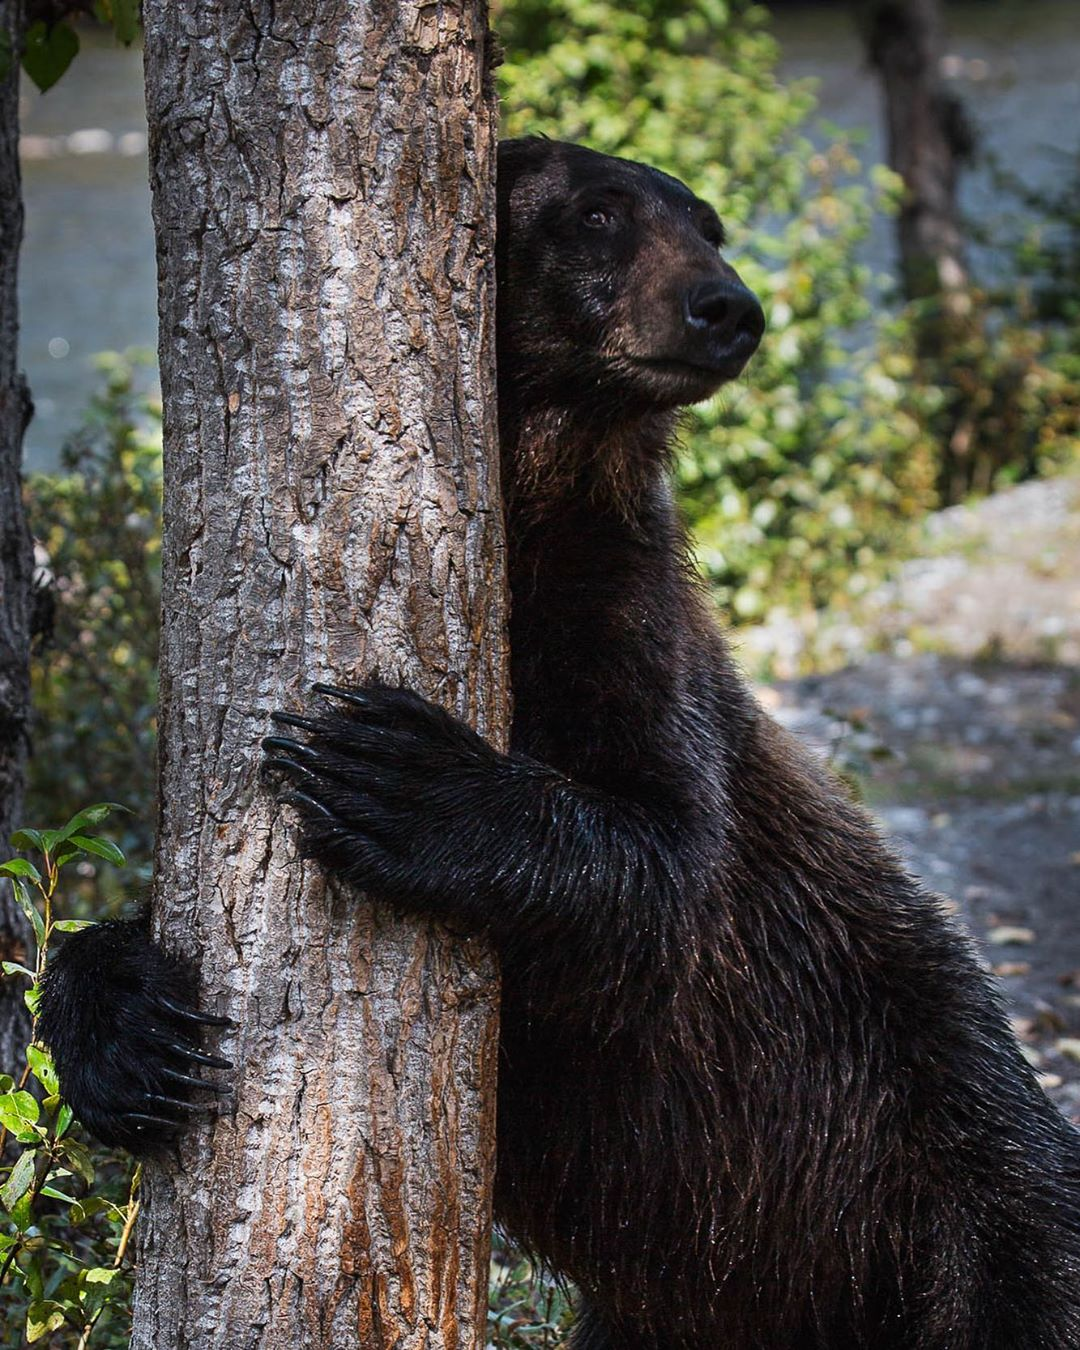 Black bear scratches its front on a tree, while holding the trunk with both its front paws, appearing as though the bear is hugging the tree.